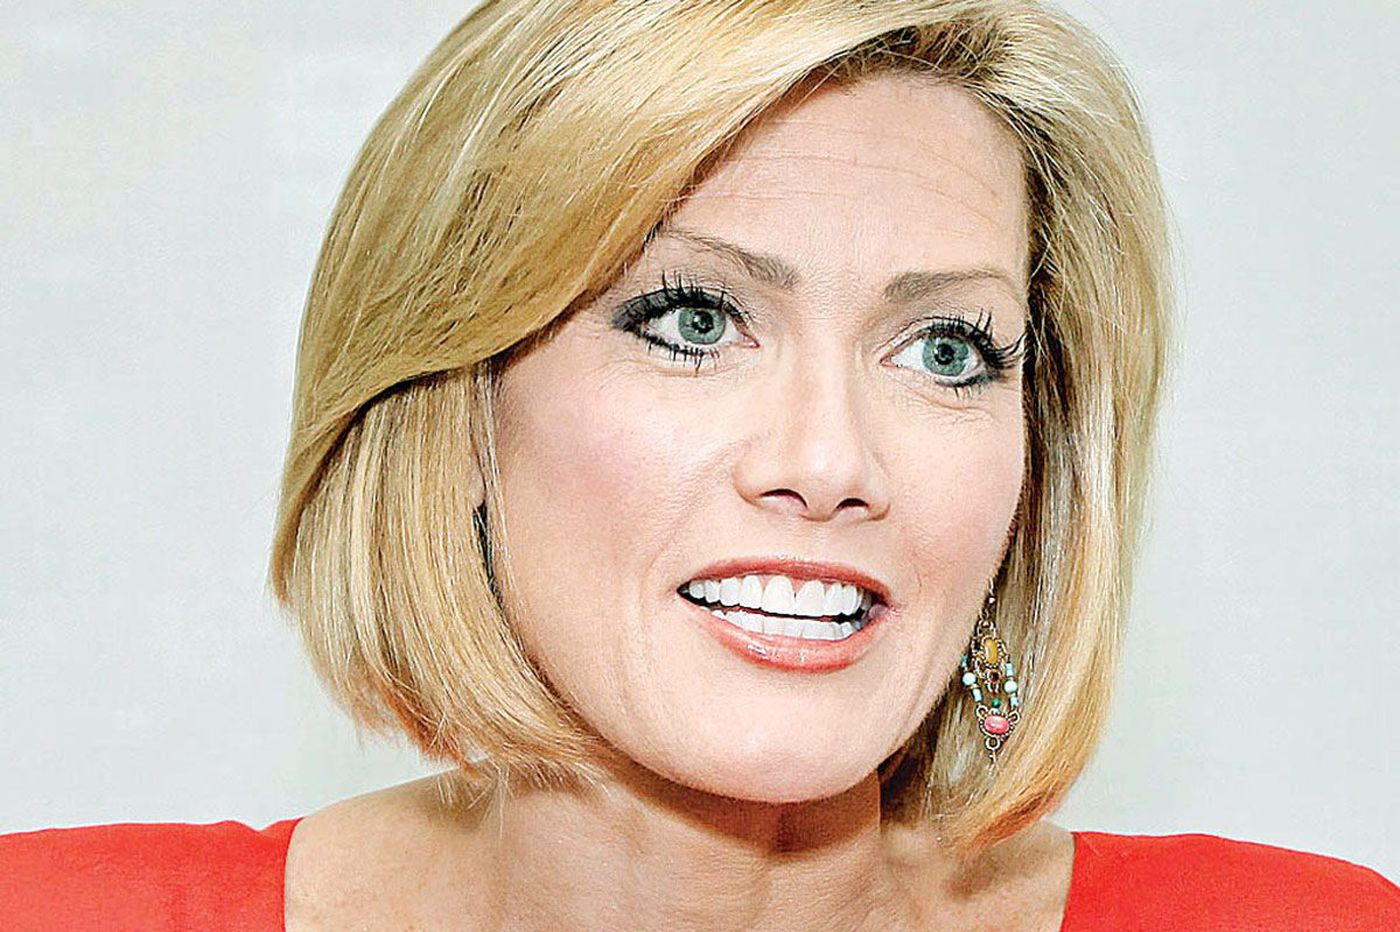 6ABC's Cecily Tynan responds to viewer who called her clothing 'unprofessional'